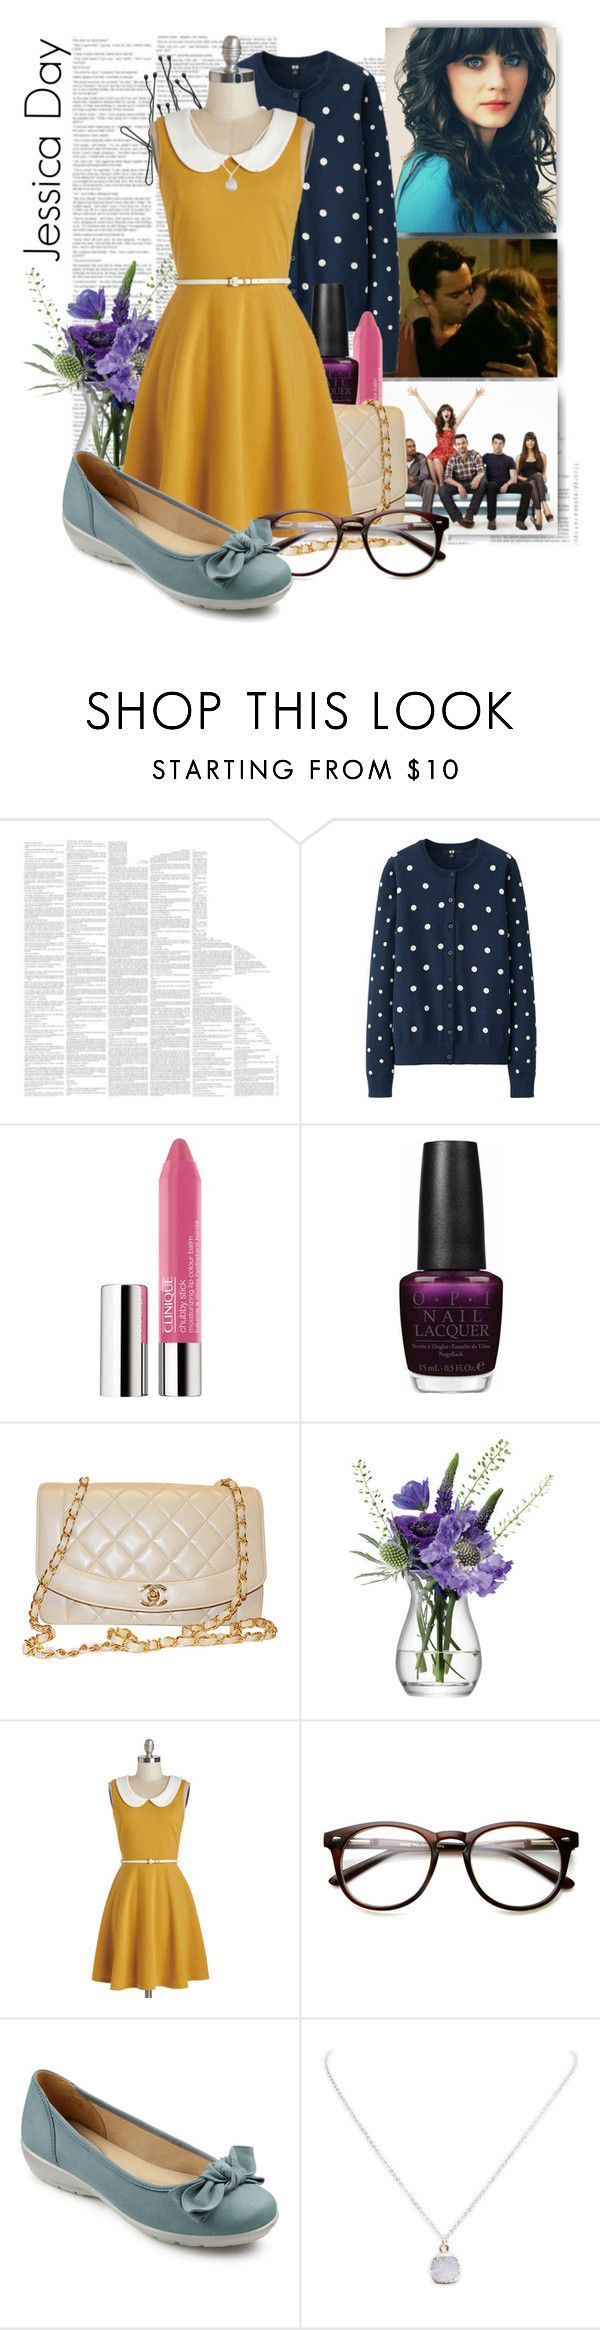 """Jessica Day from New Girl"" by salemwitchesinstitute ❤ liked on Polyvore featuring Spineless Classics, Uniqlo, Clinique, OPI, Chanel, LSA International, Hotter, Wet Seal and plus size dresses"